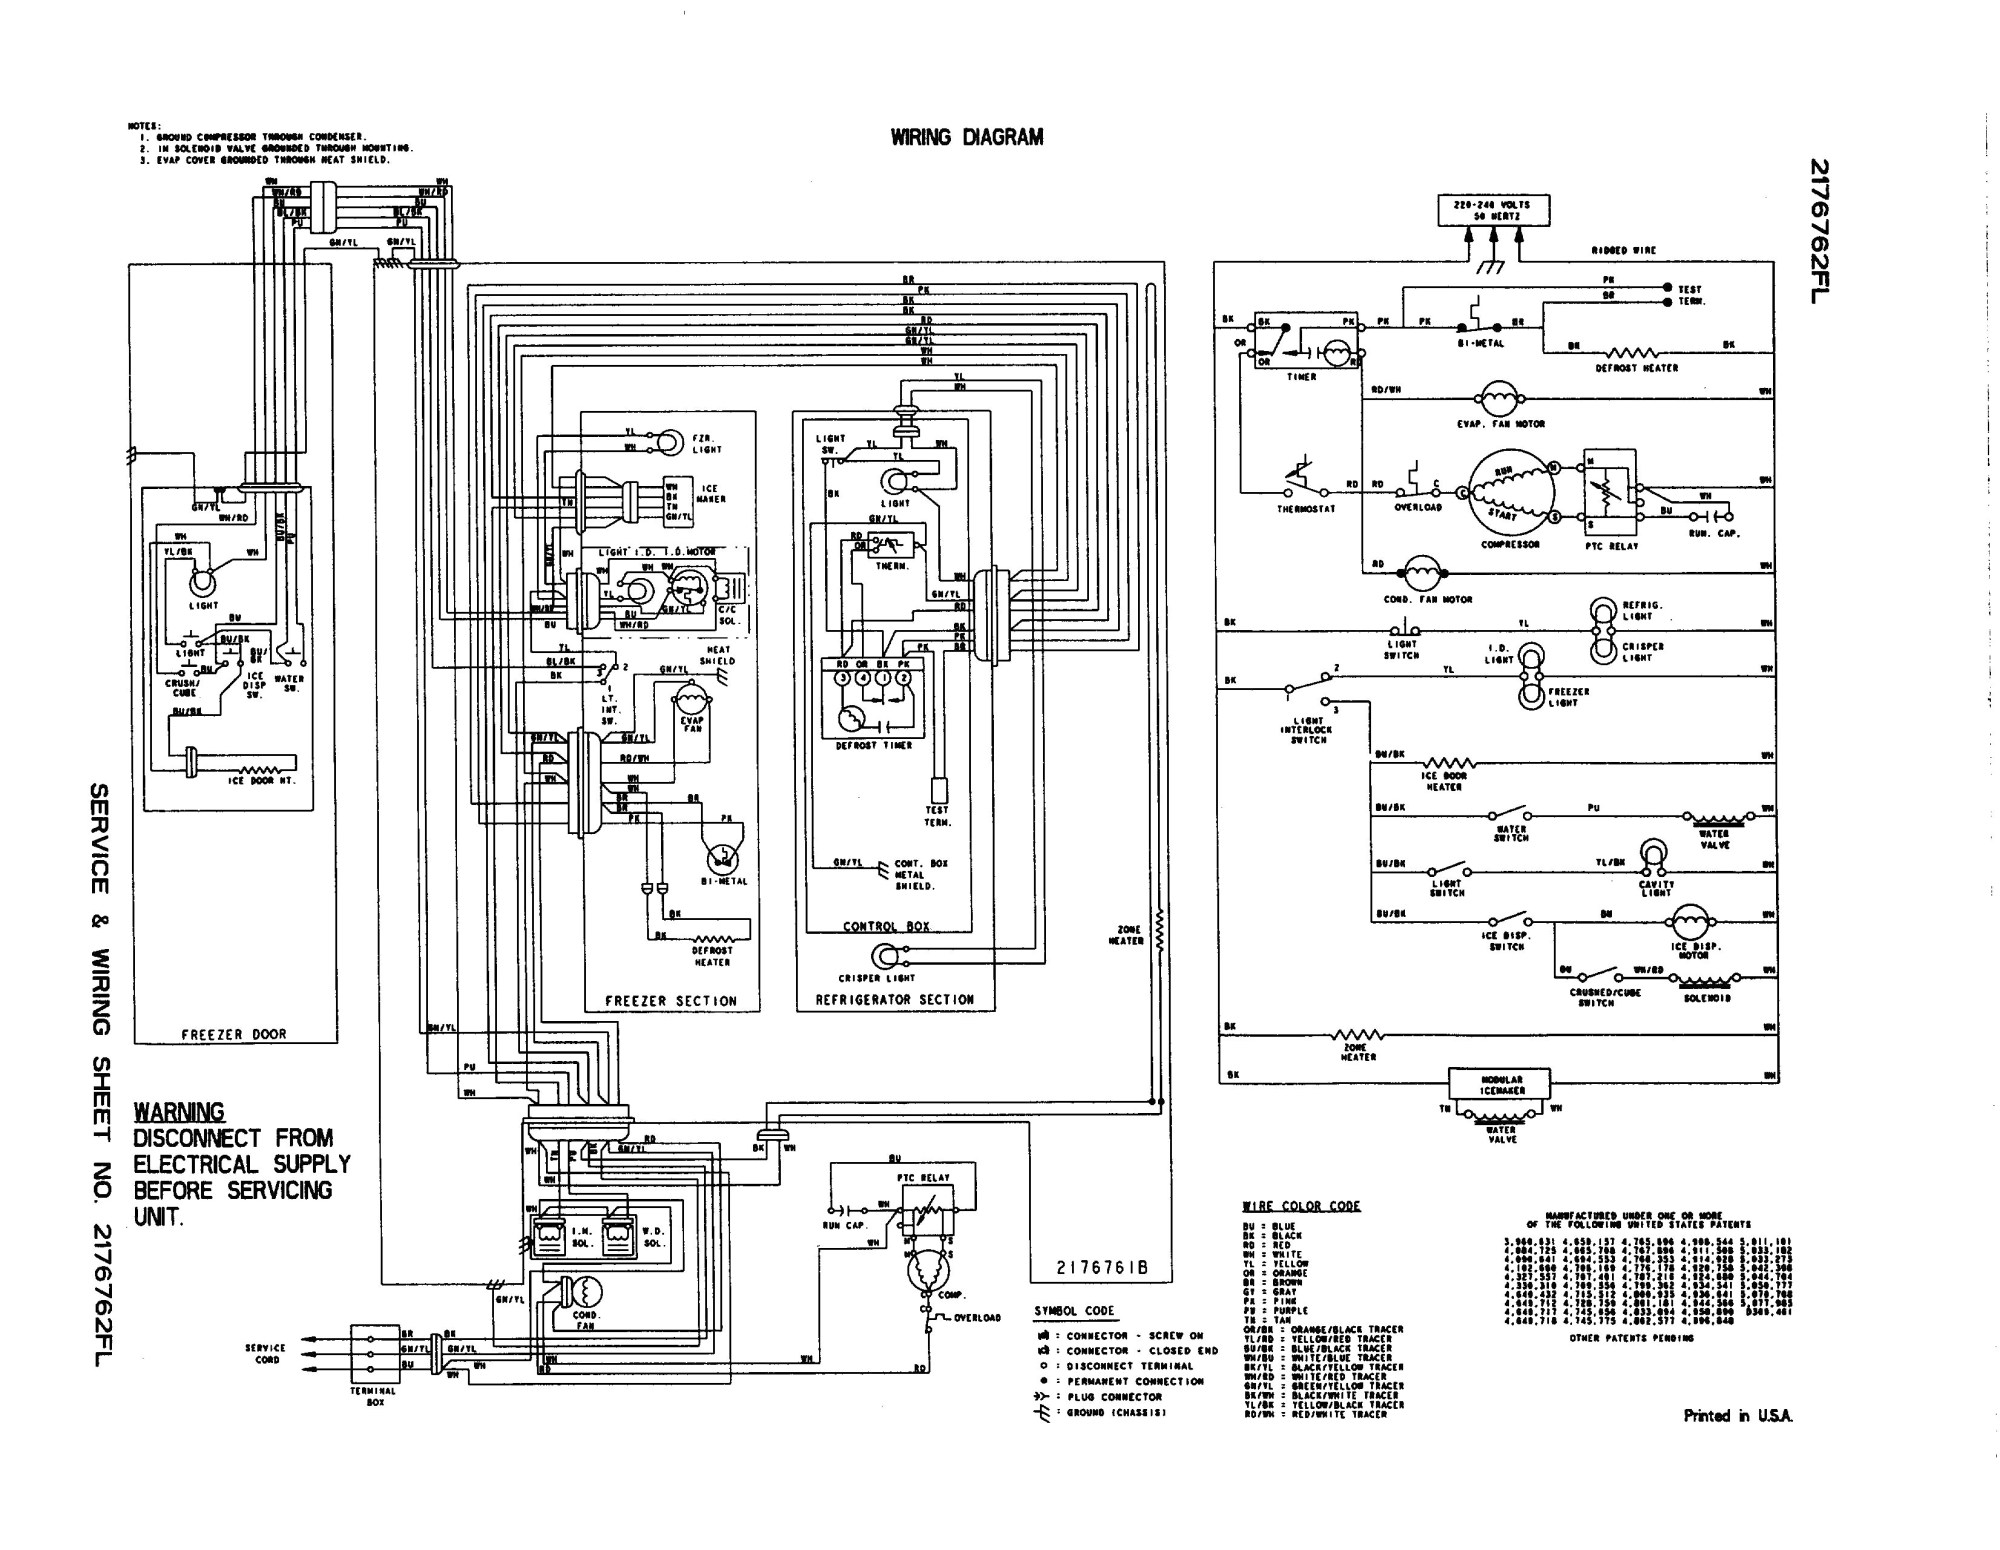 hight resolution of frigidaire ice maker wiring diagram collection ge refrigerator wiring diagram ice maker fresh whirlpool refrigerator download wiring diagram